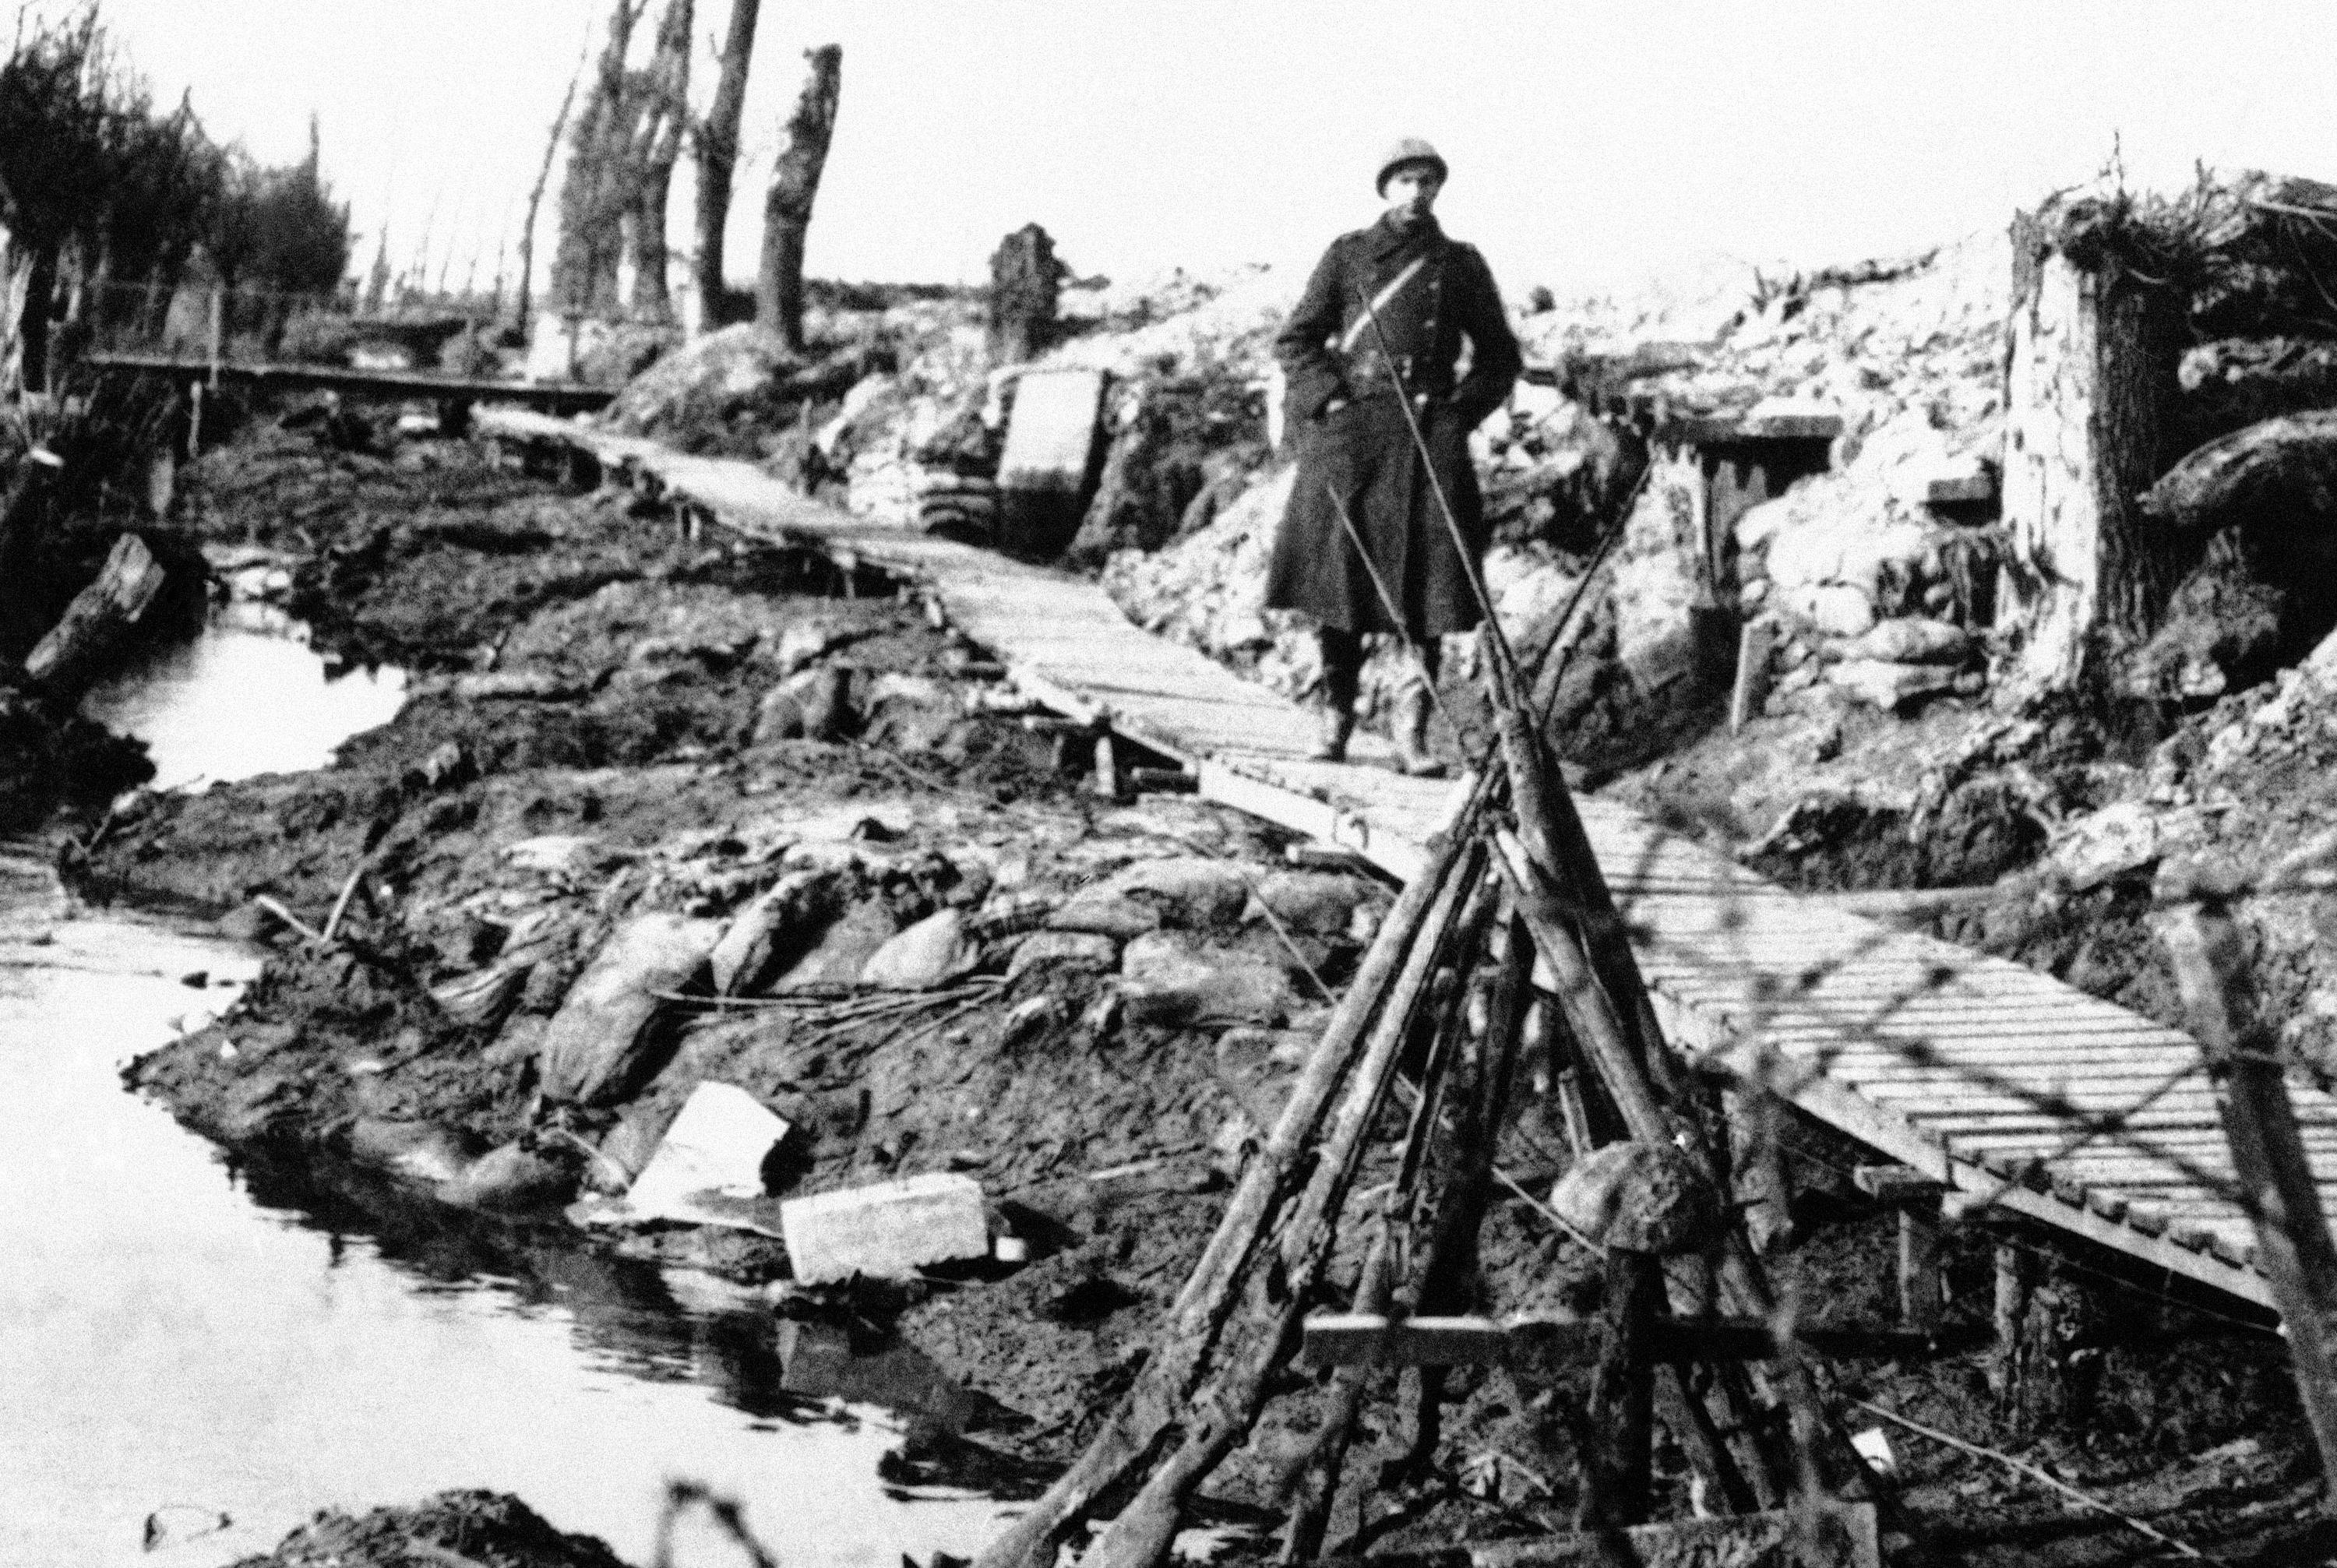 65 OF 100: In this 1917 file photo, an unidentified World War I soldier walks along wooden planks placed over the mud of Flanders' Fields near the Yperlee Canal near Ypres, Belgium.